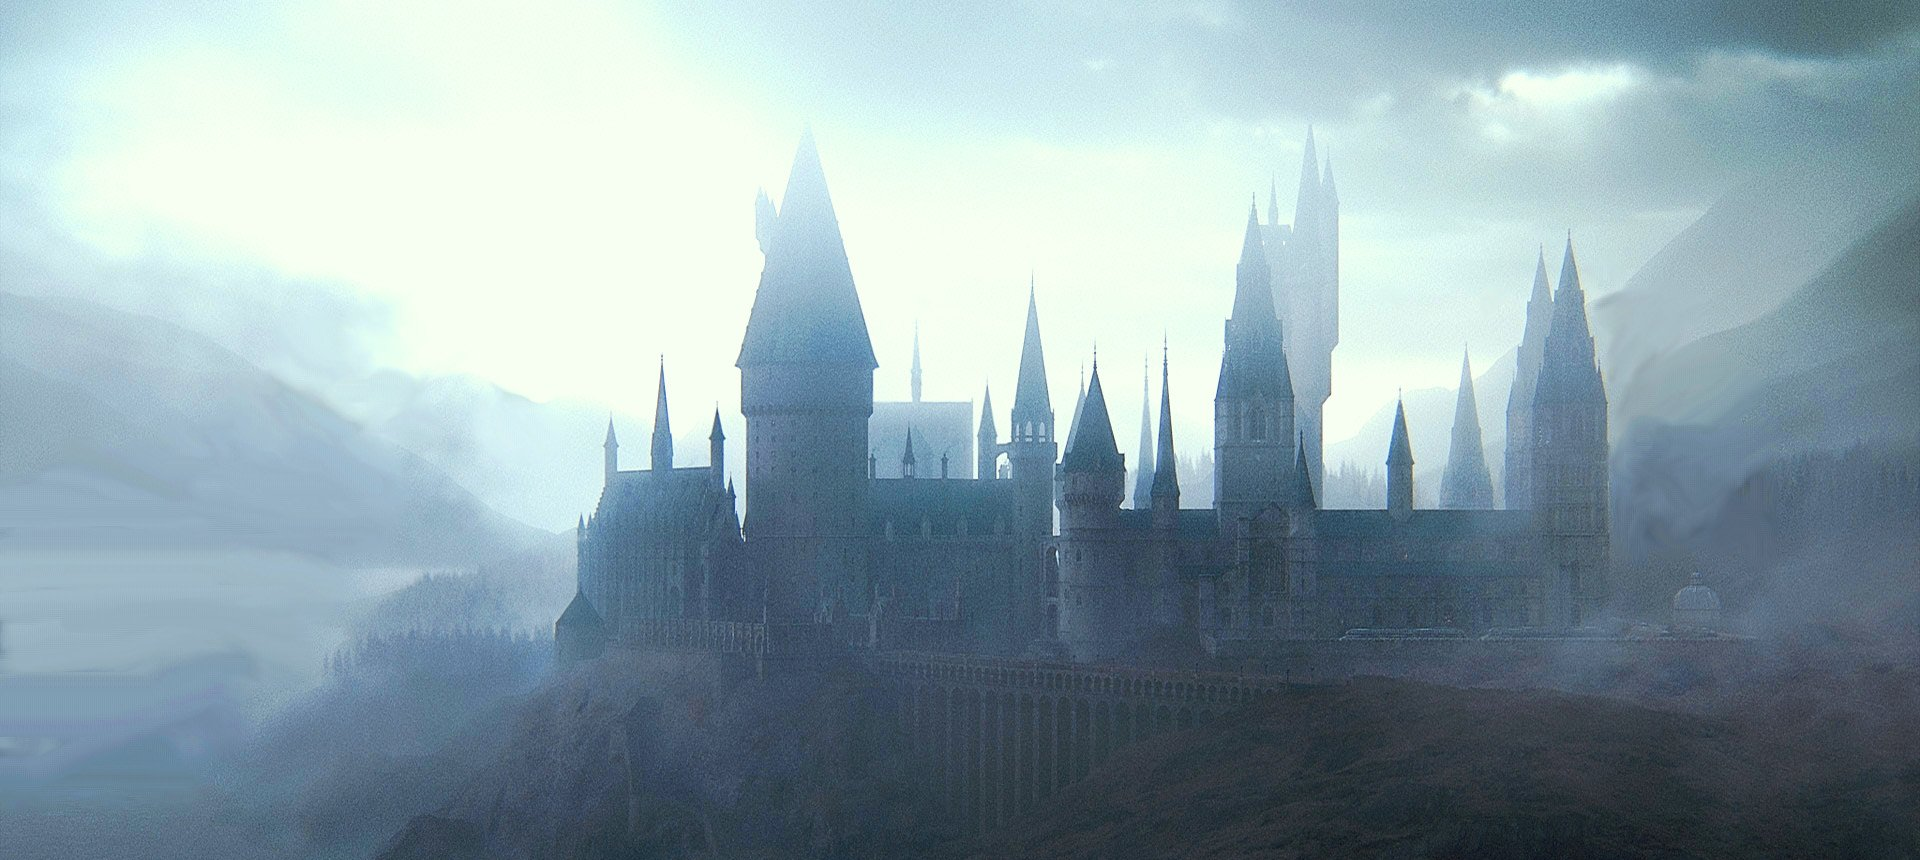 What is your favorite Harry Potter wallpaper? : harrypotter